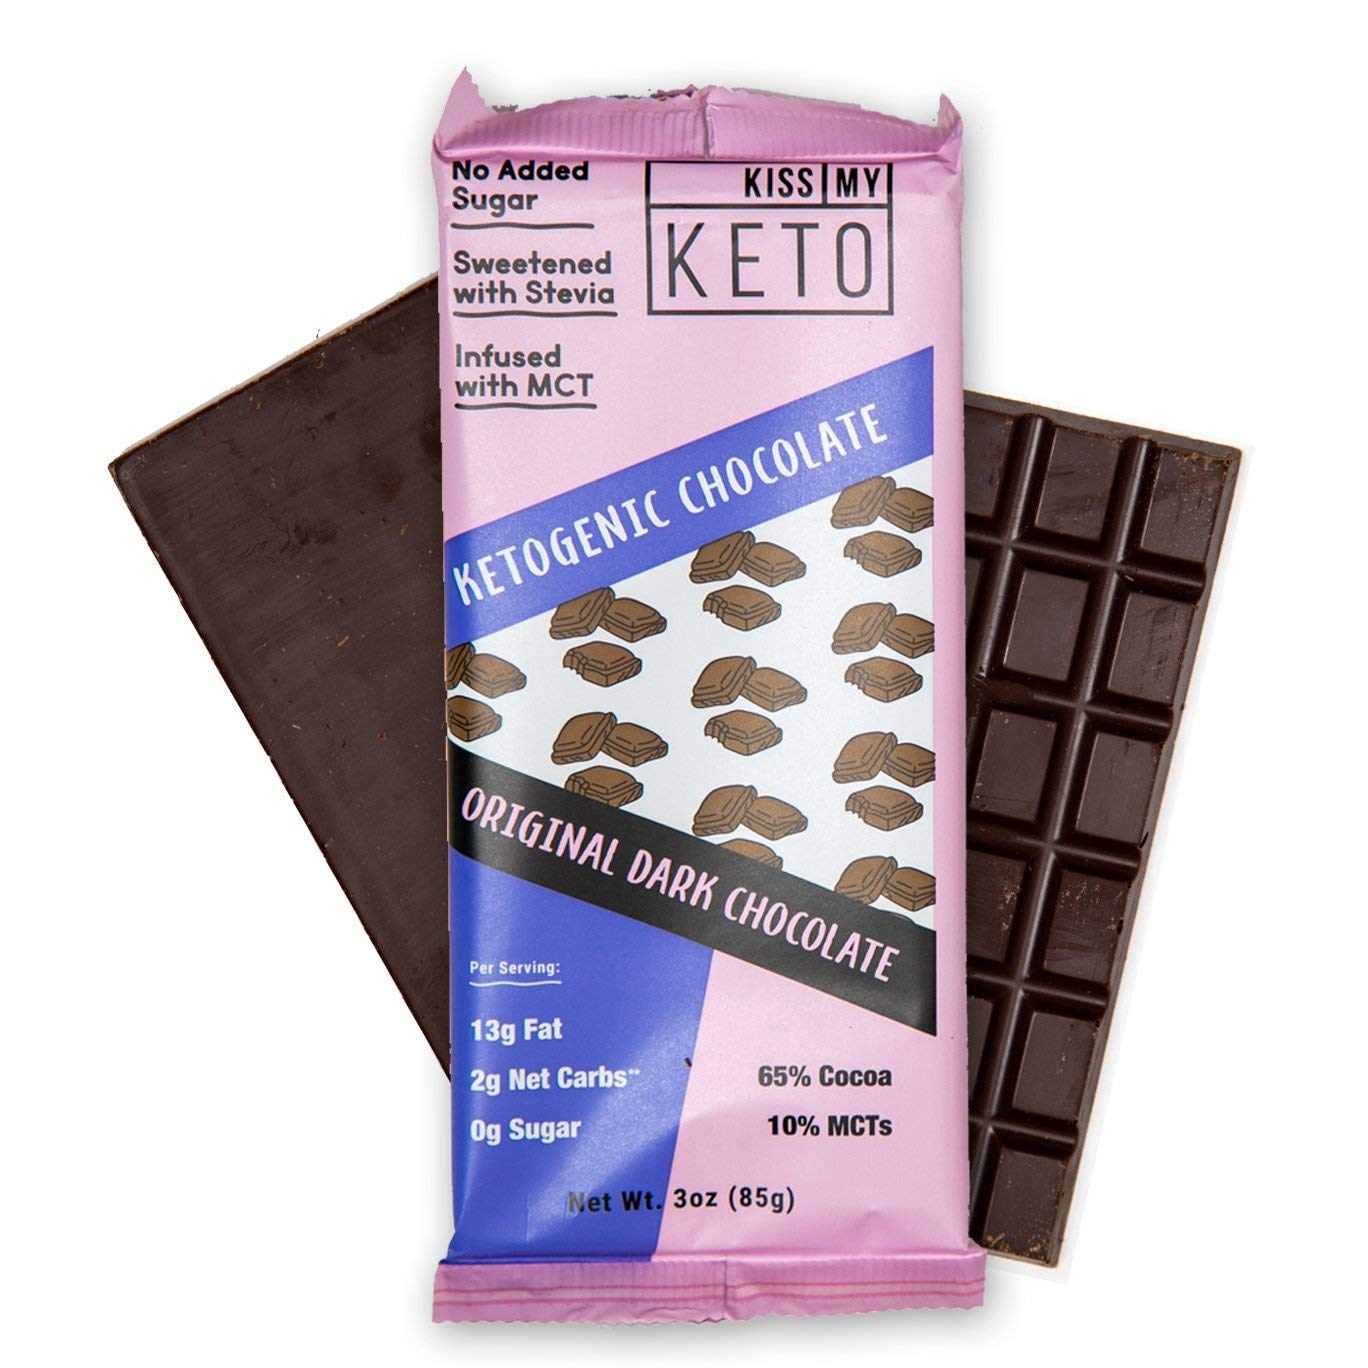 Kiss My Keto Low Carb Keto Dark Chocolate Keto Snack, (4x 3 oz Bars per Pack) A Perfect Sweet Treat with MCT Oil for Ketogenic Diet Support Sugar-Free, Keto Friendly Foods - No Artificial Ingredients by Kiss My Keto